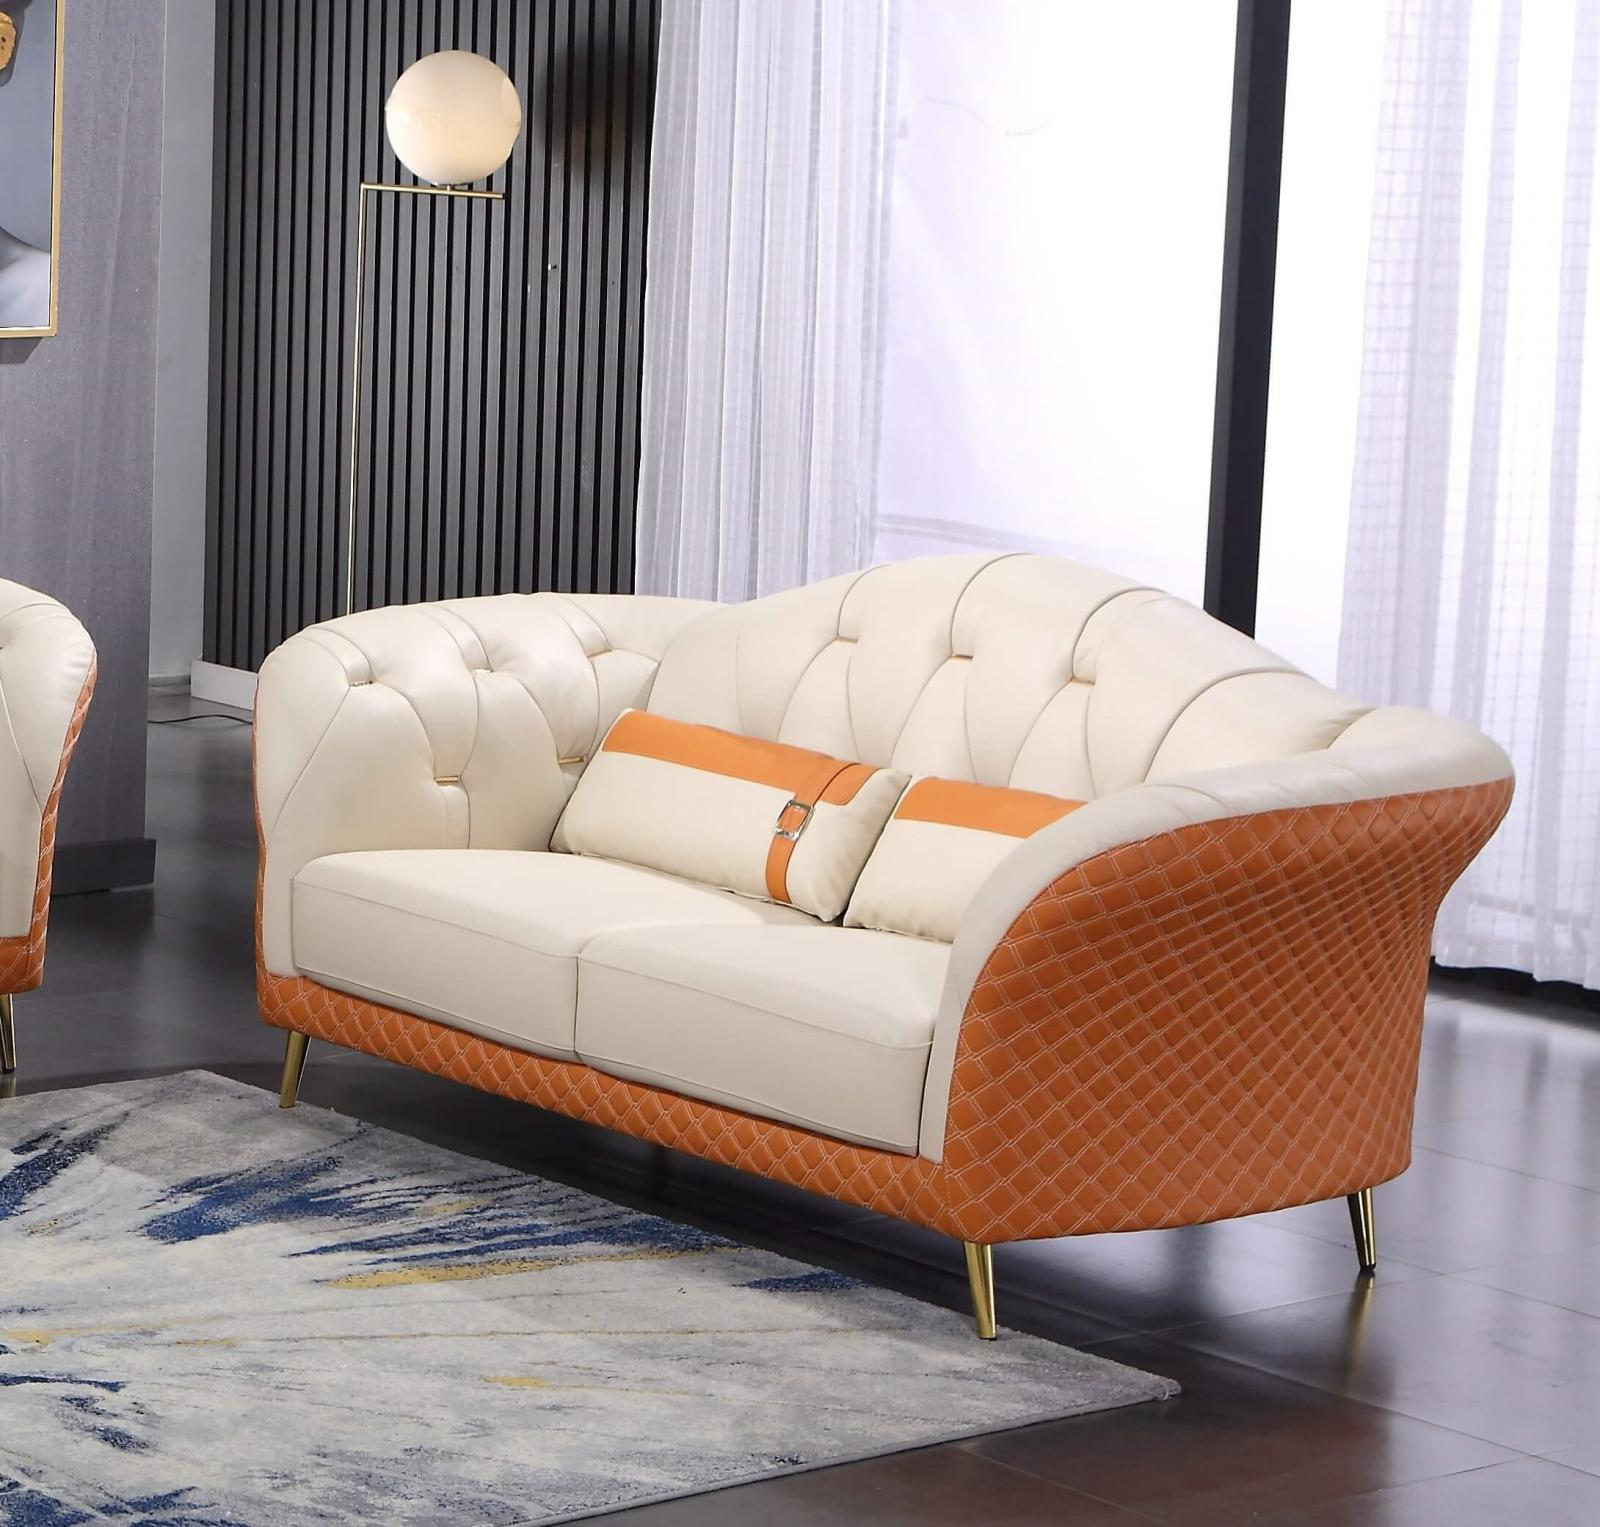 Modern  Vintage Orange  Off-White Wood  Genuine leather  Solid Hardwood and Italian Leather Loveseat EUROPEAN FURNITURE EF-28040-L